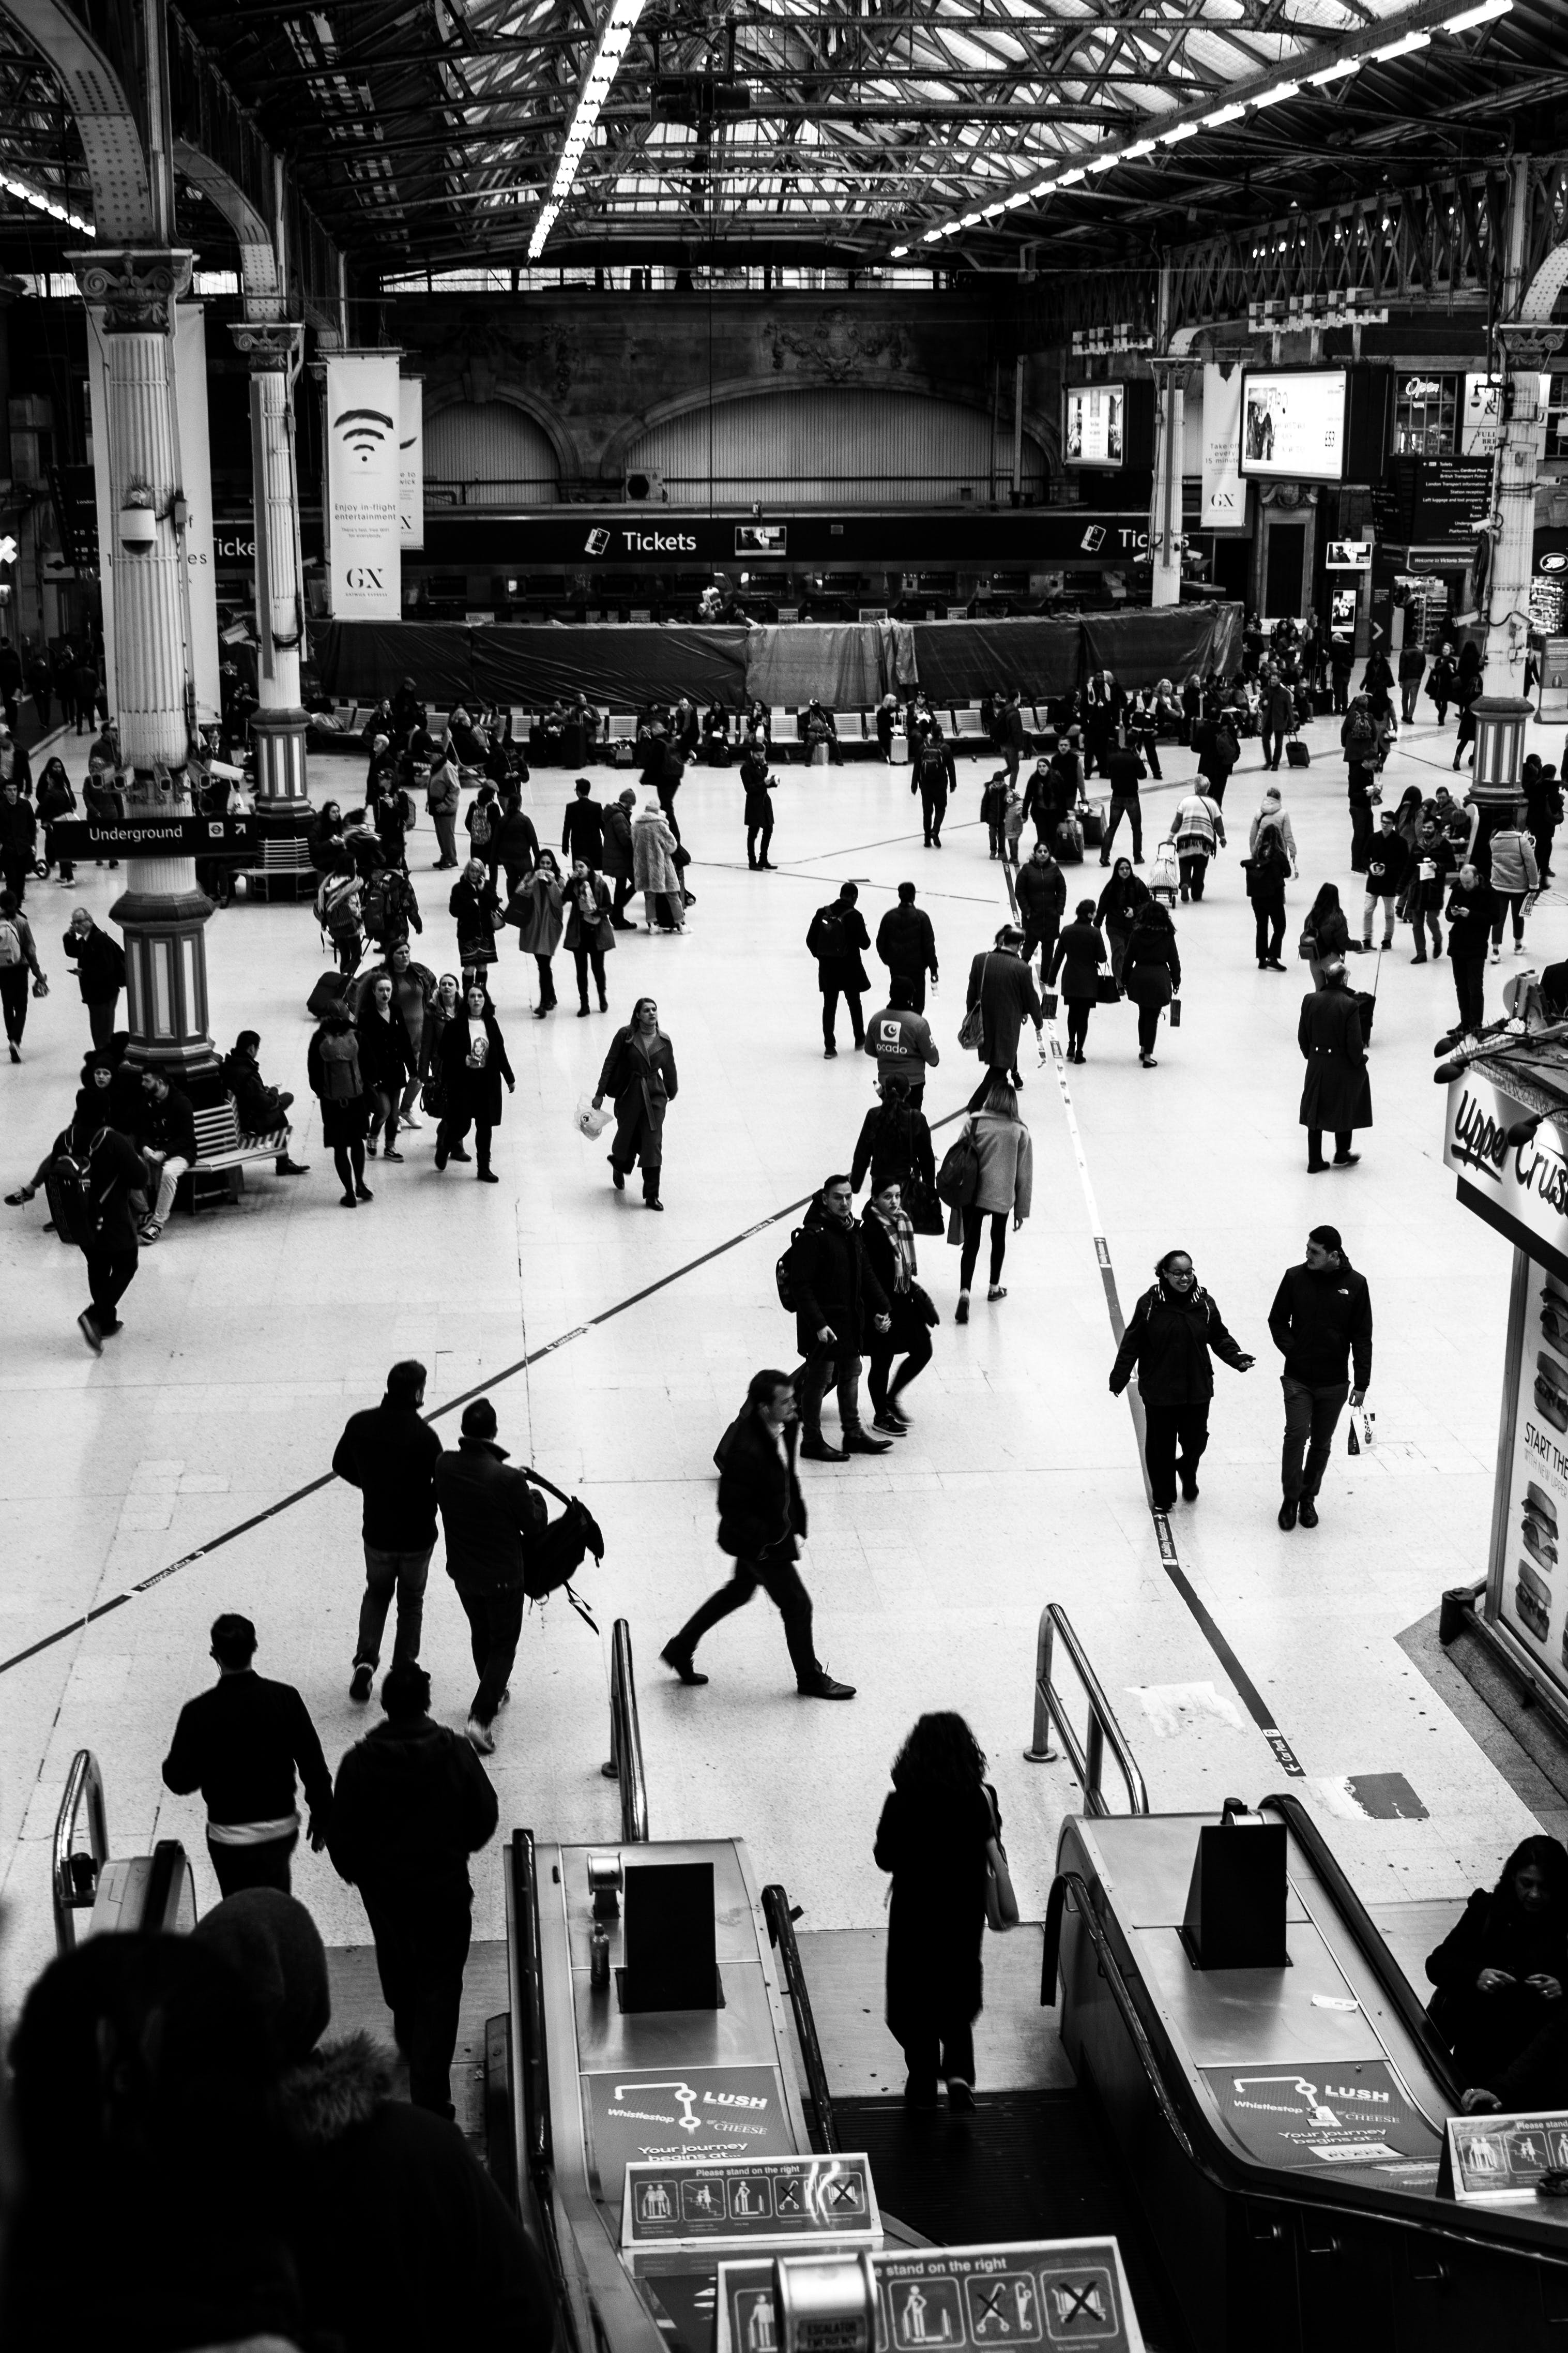 Free stock photo of people, train station